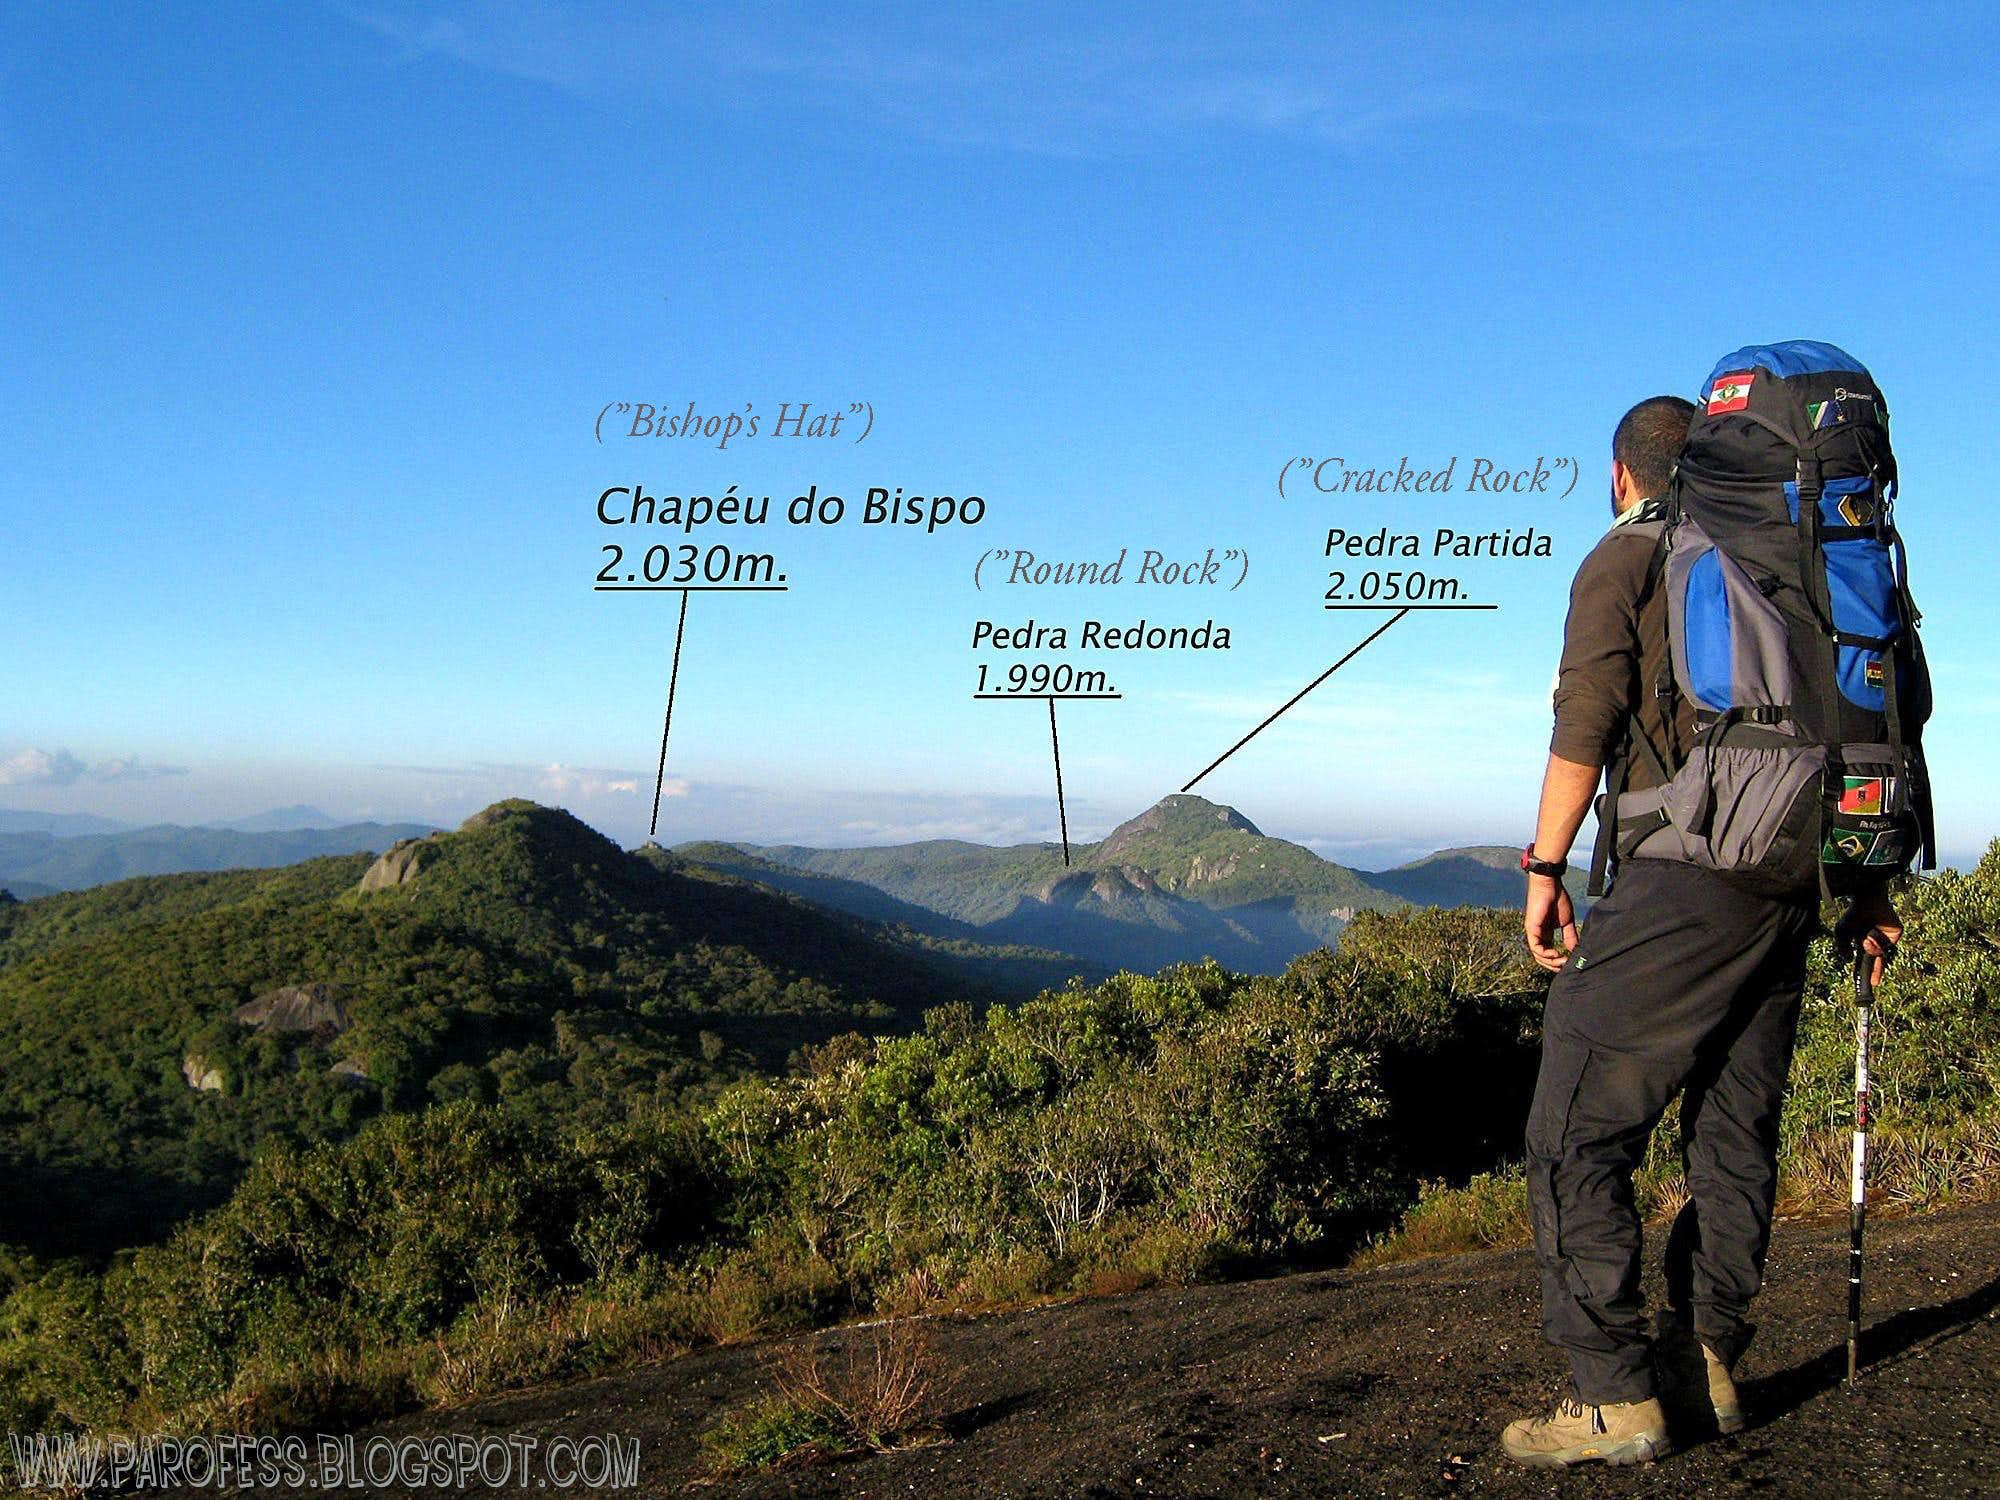 Chapéu do Bispo peak